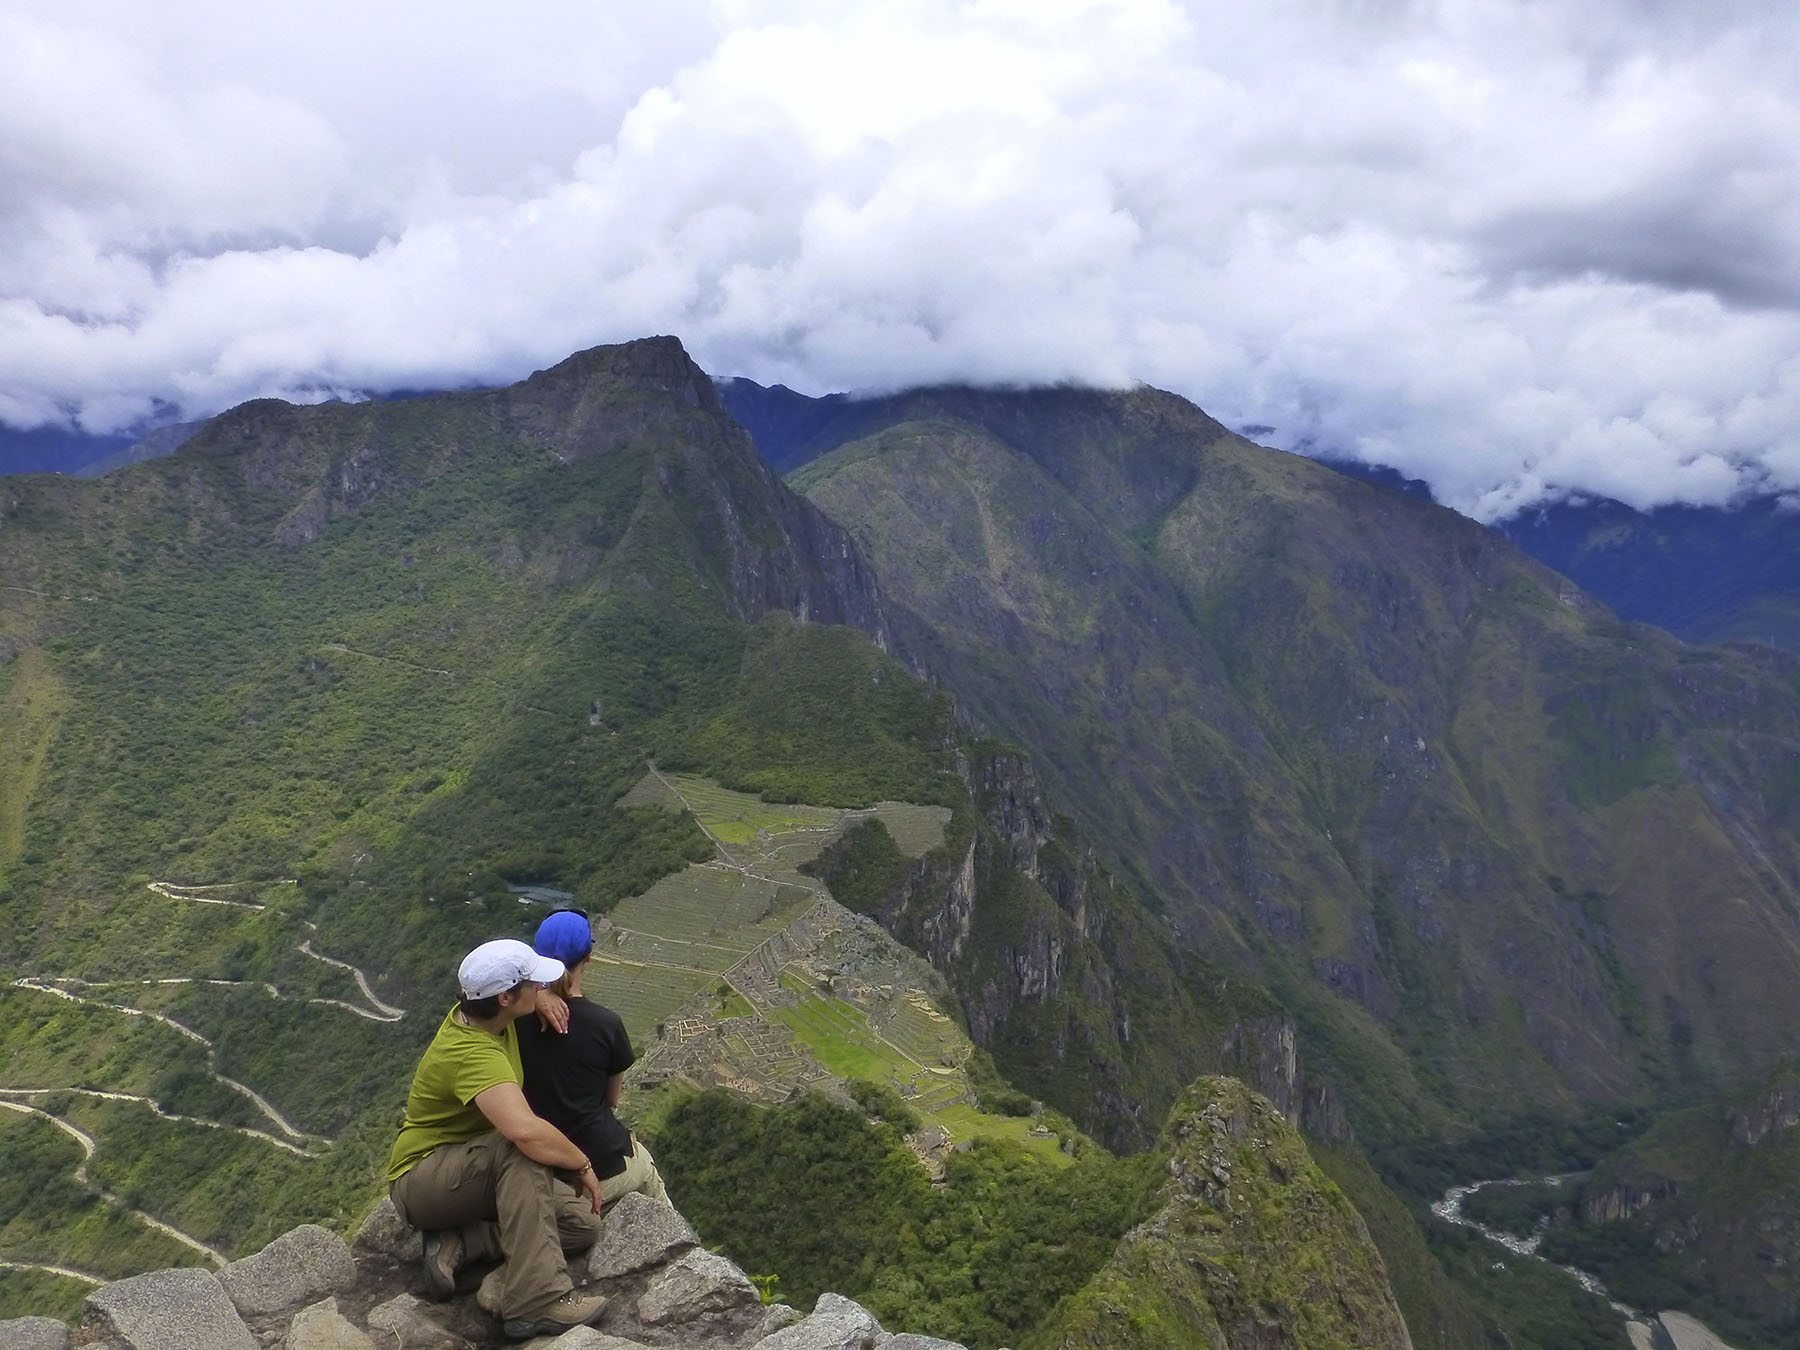 The view from the top of Huayna Picchu